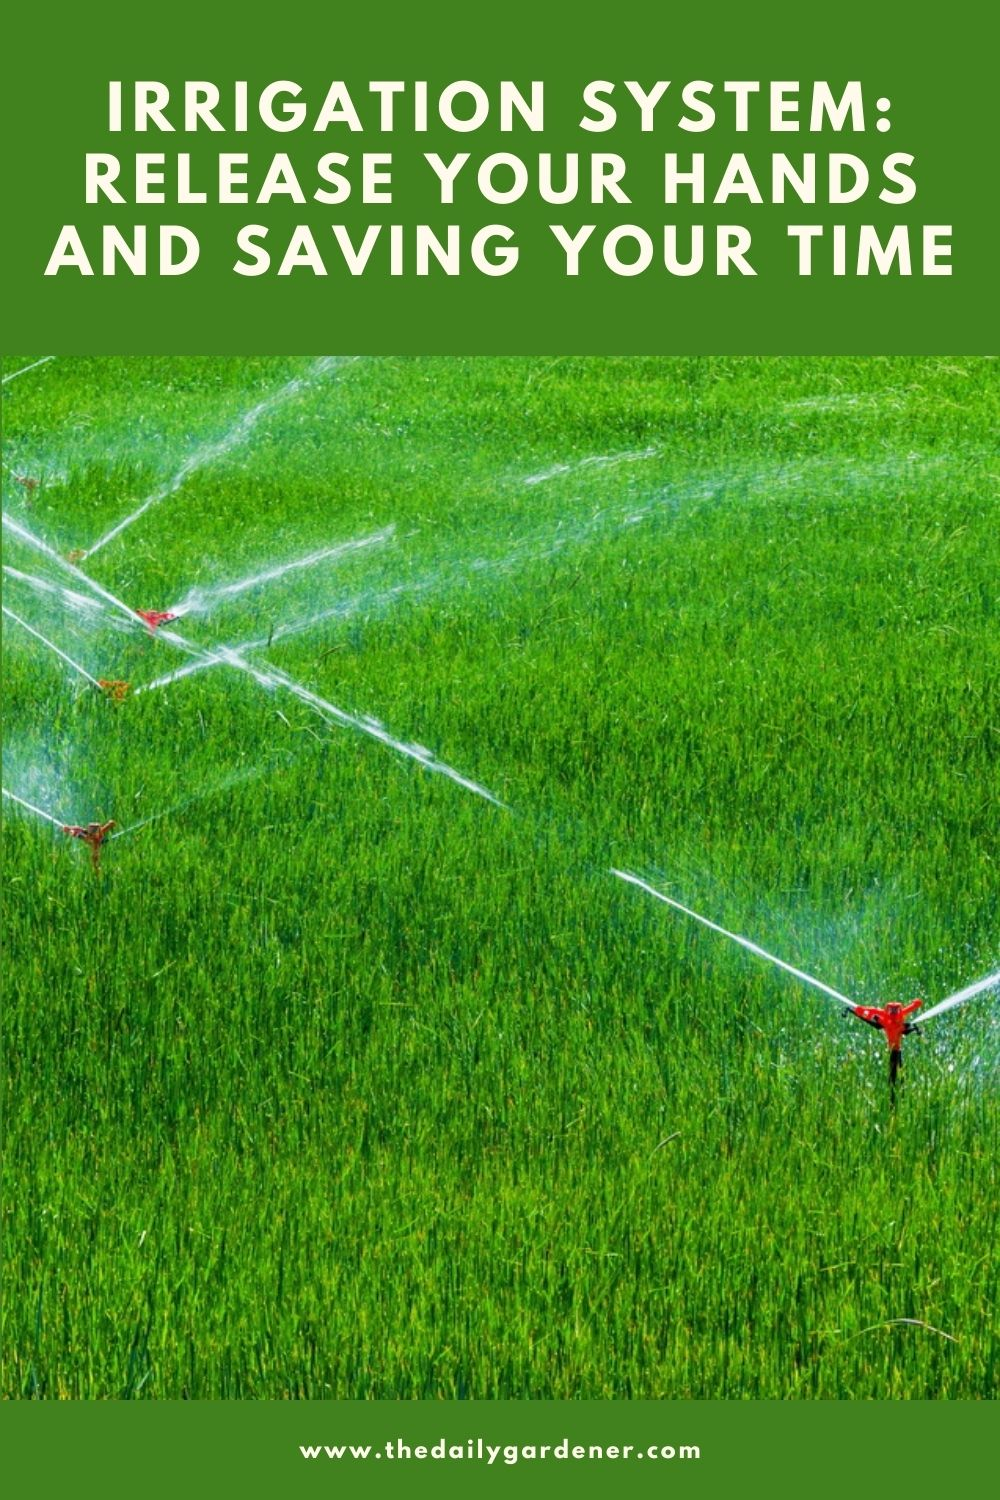 Irrigation System Release Your Hands and Saving Your time 2